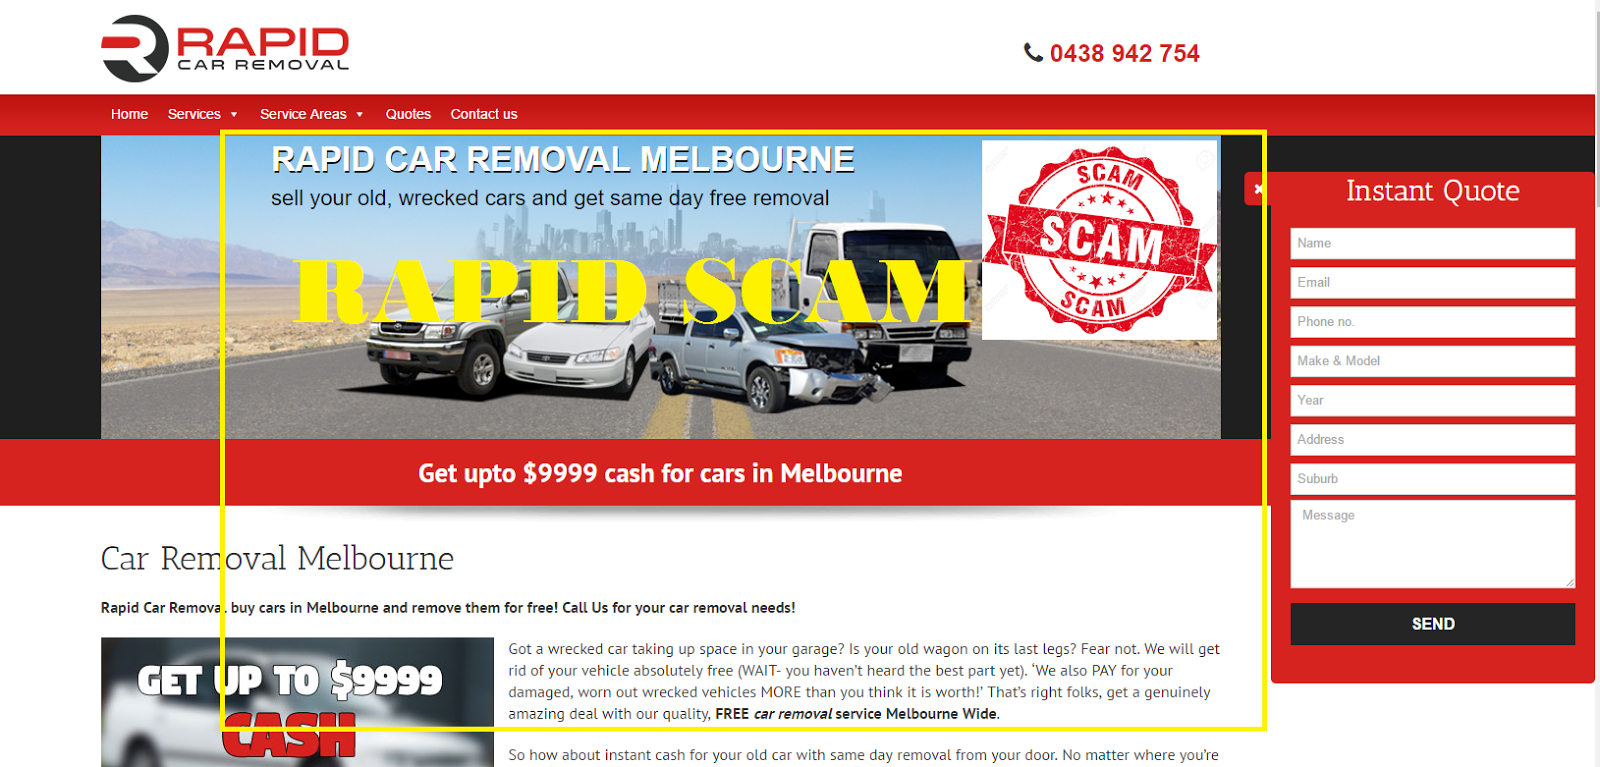 Rapid Scam News Melbourne: Rapid Car Removals and Wreckers All Scam